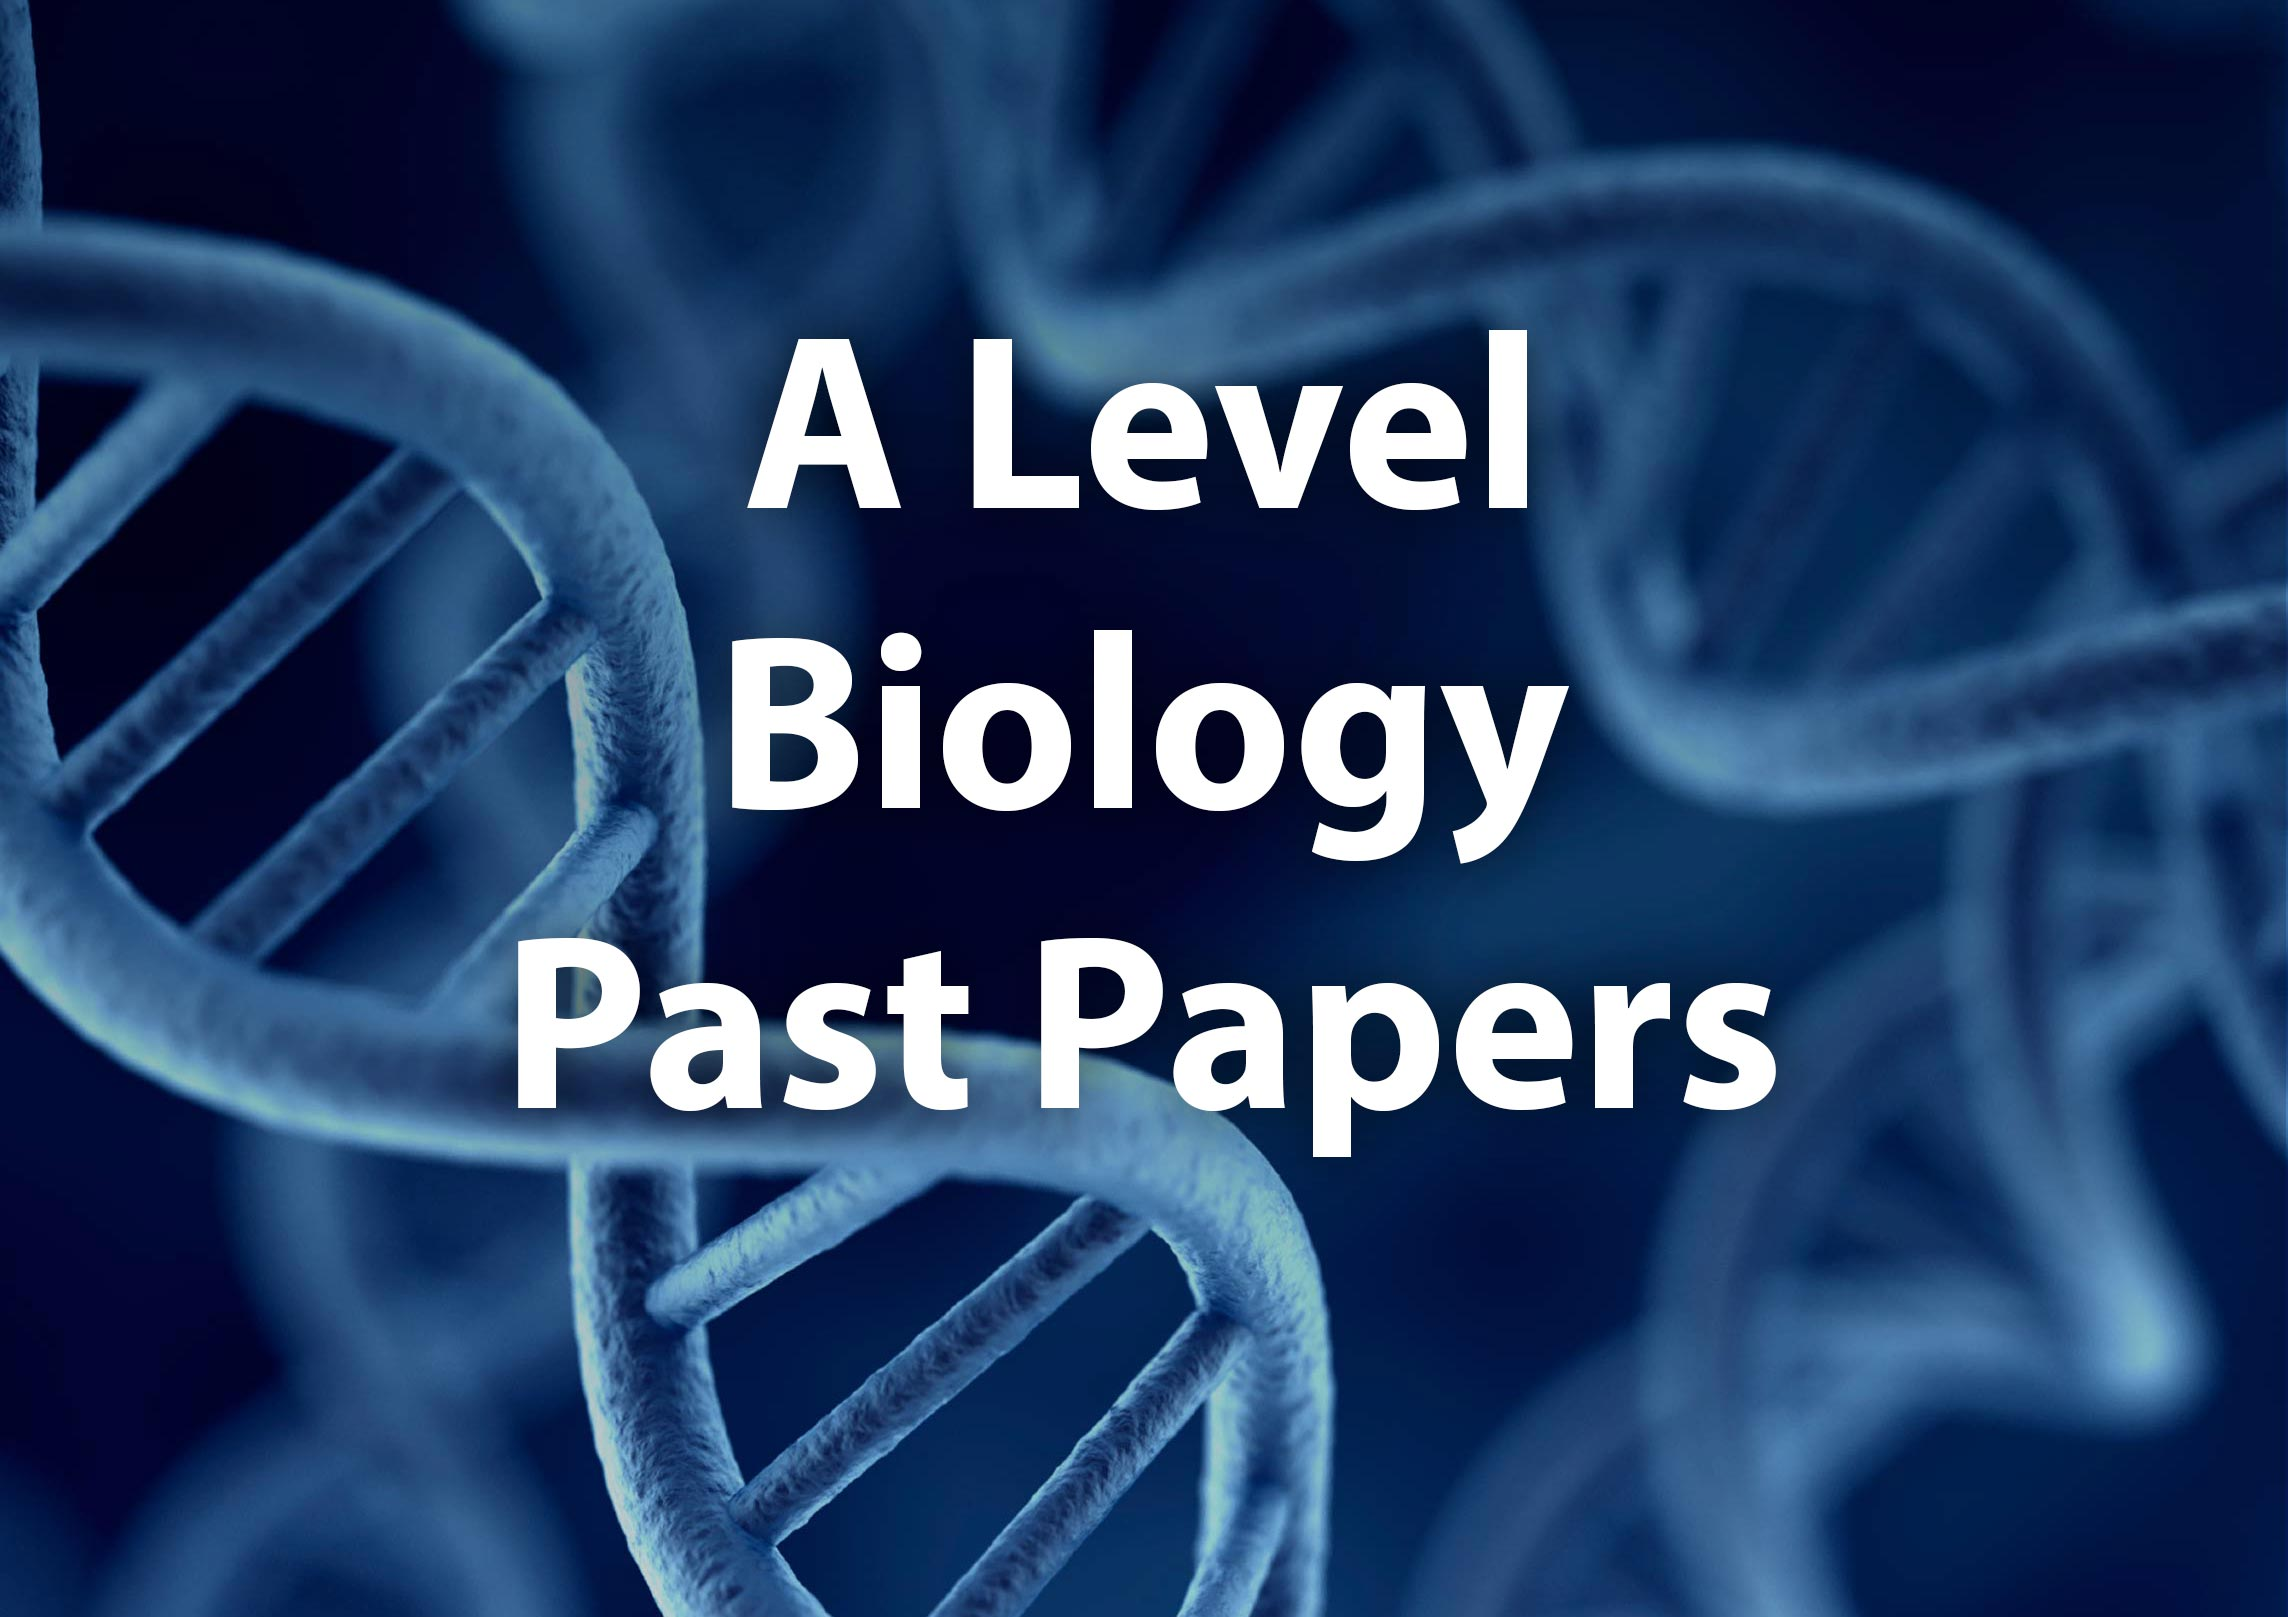 A Level Biology (9700) Past Papers